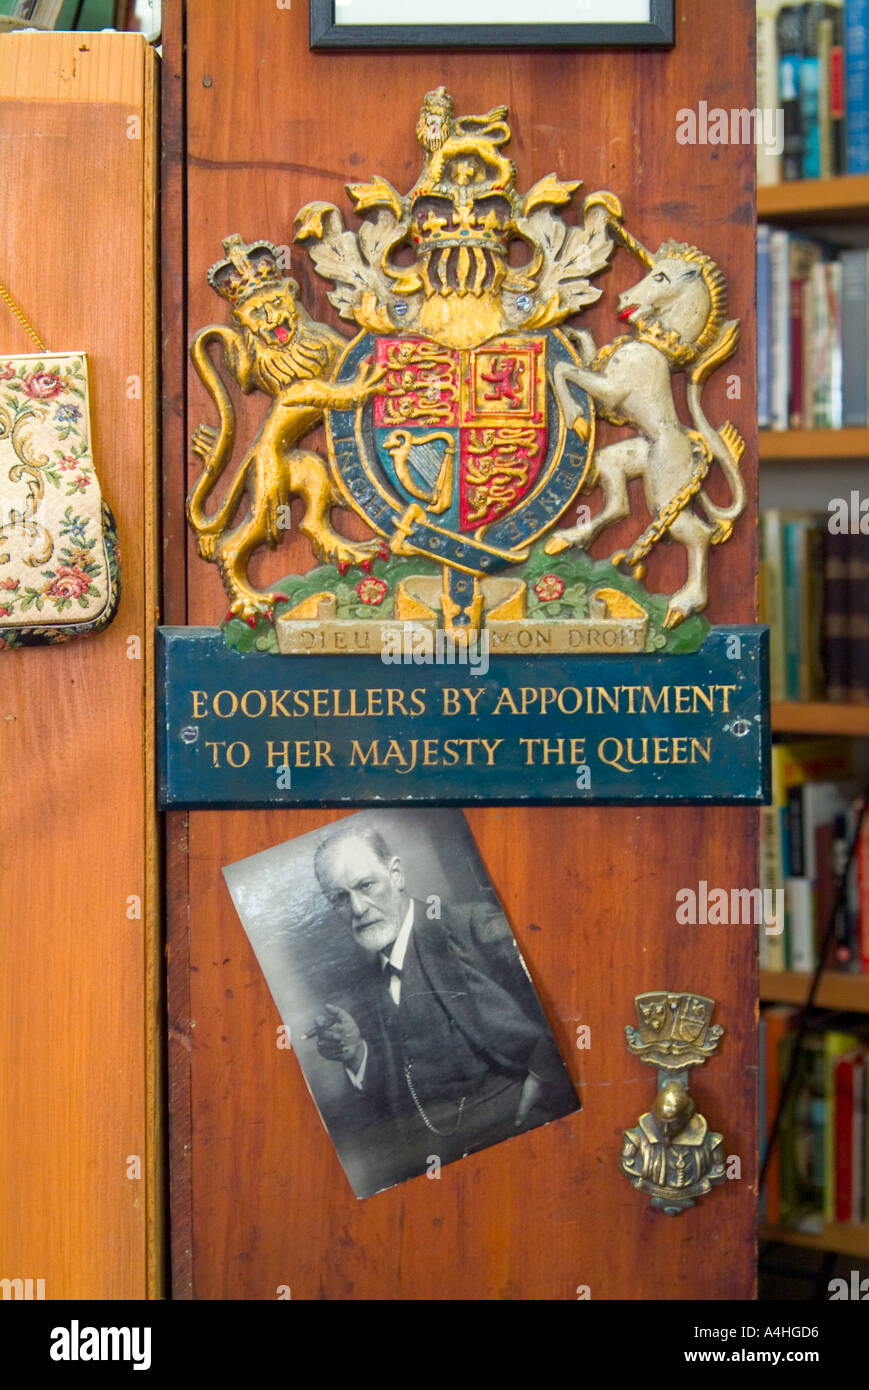 By appointment Royal warrant coat of arms and portrait of Sigmund Freud in secondhand bookshop - Stock Image